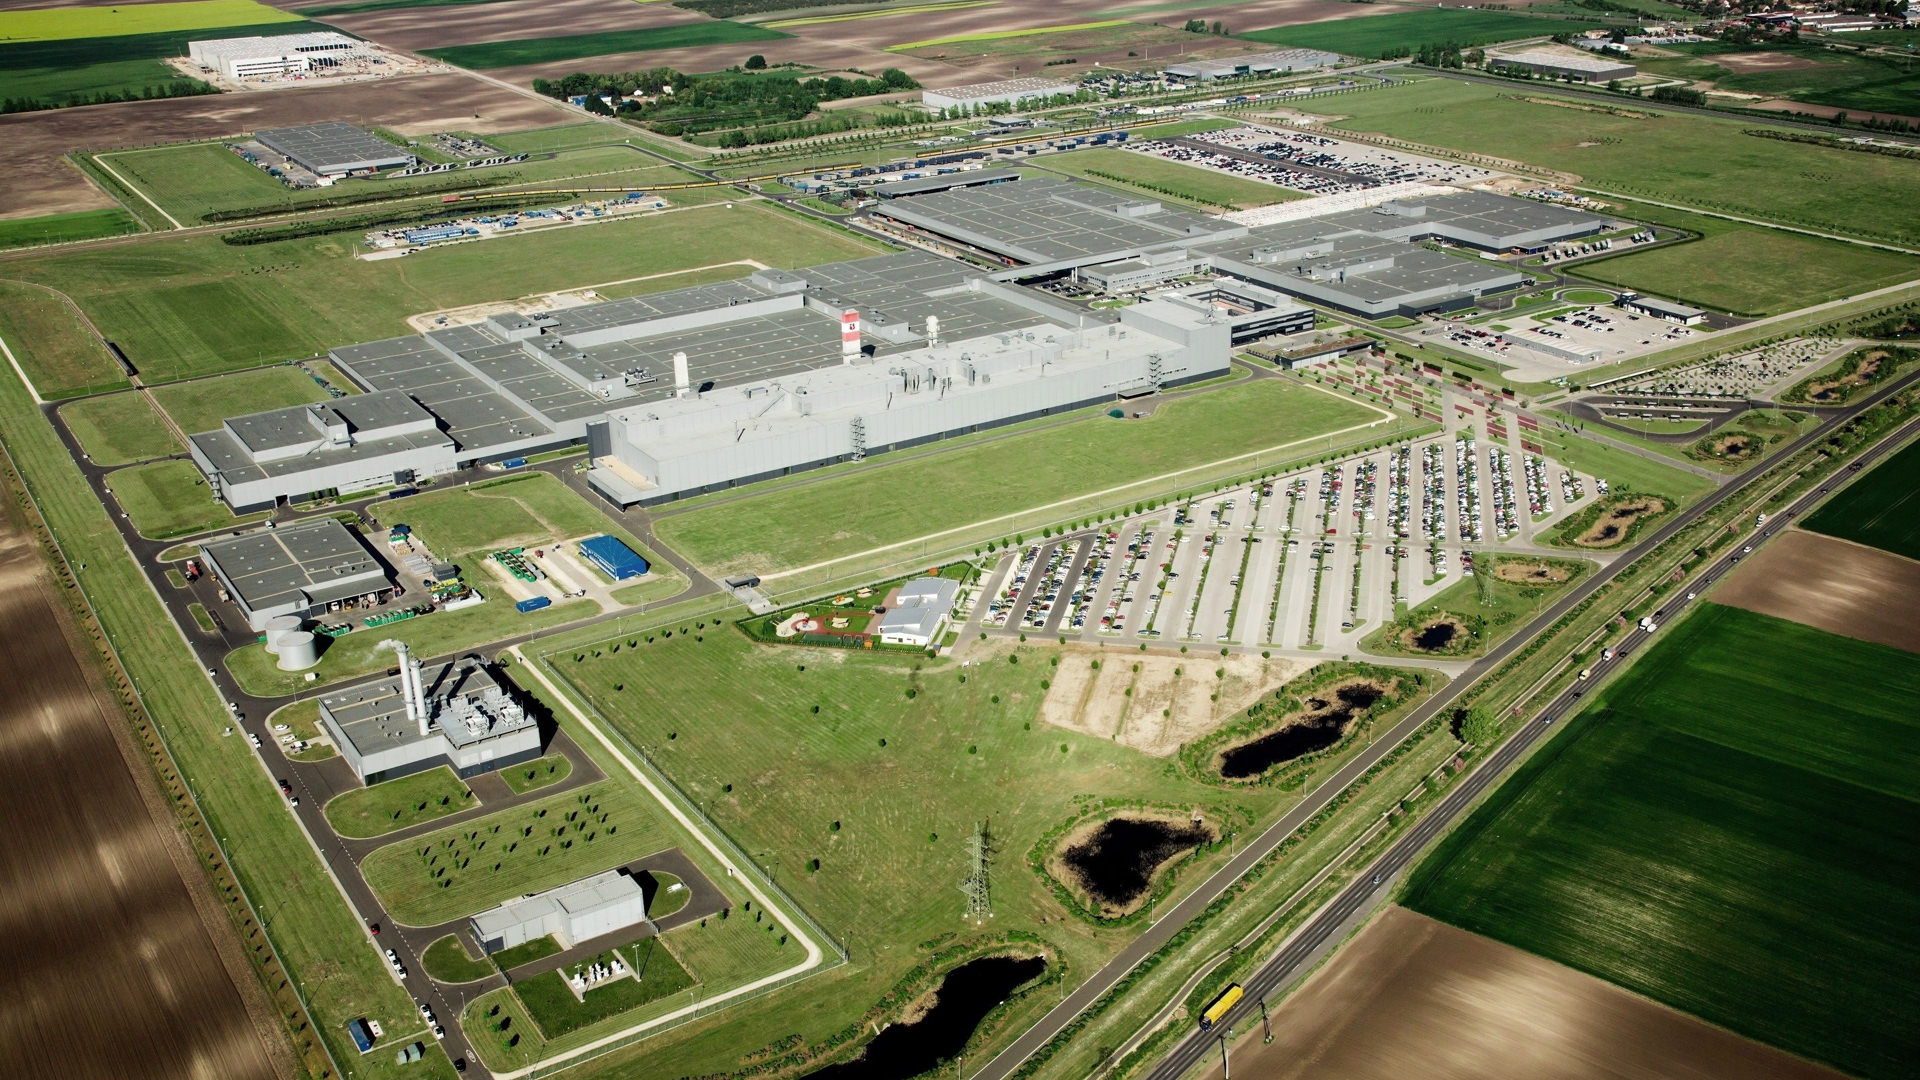 Aerial photo of the Mercedes-Benz plant in Kecskemét